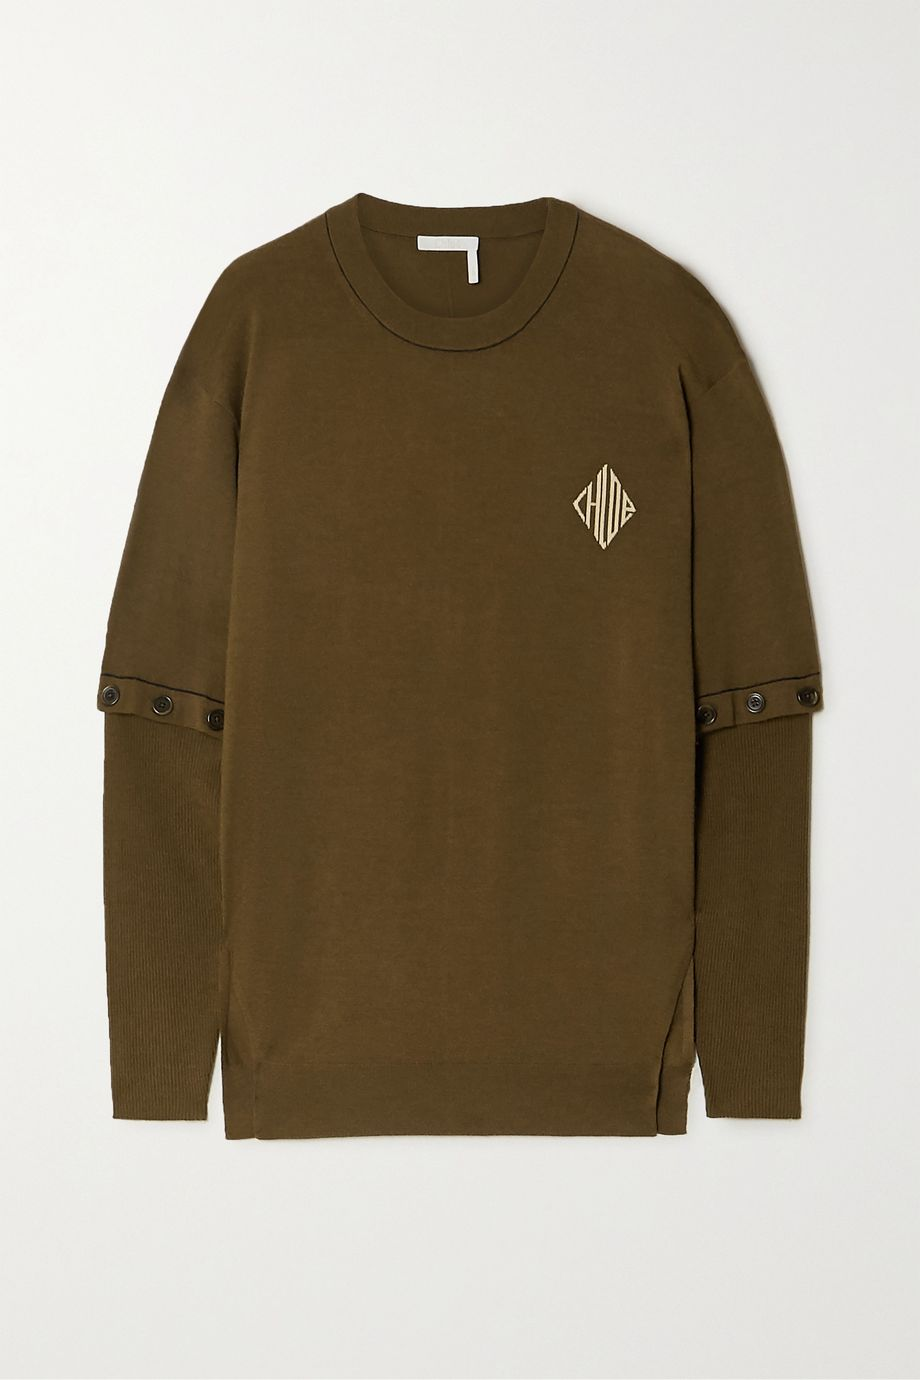 Chloé Convertible intarsia wool-blend sweater